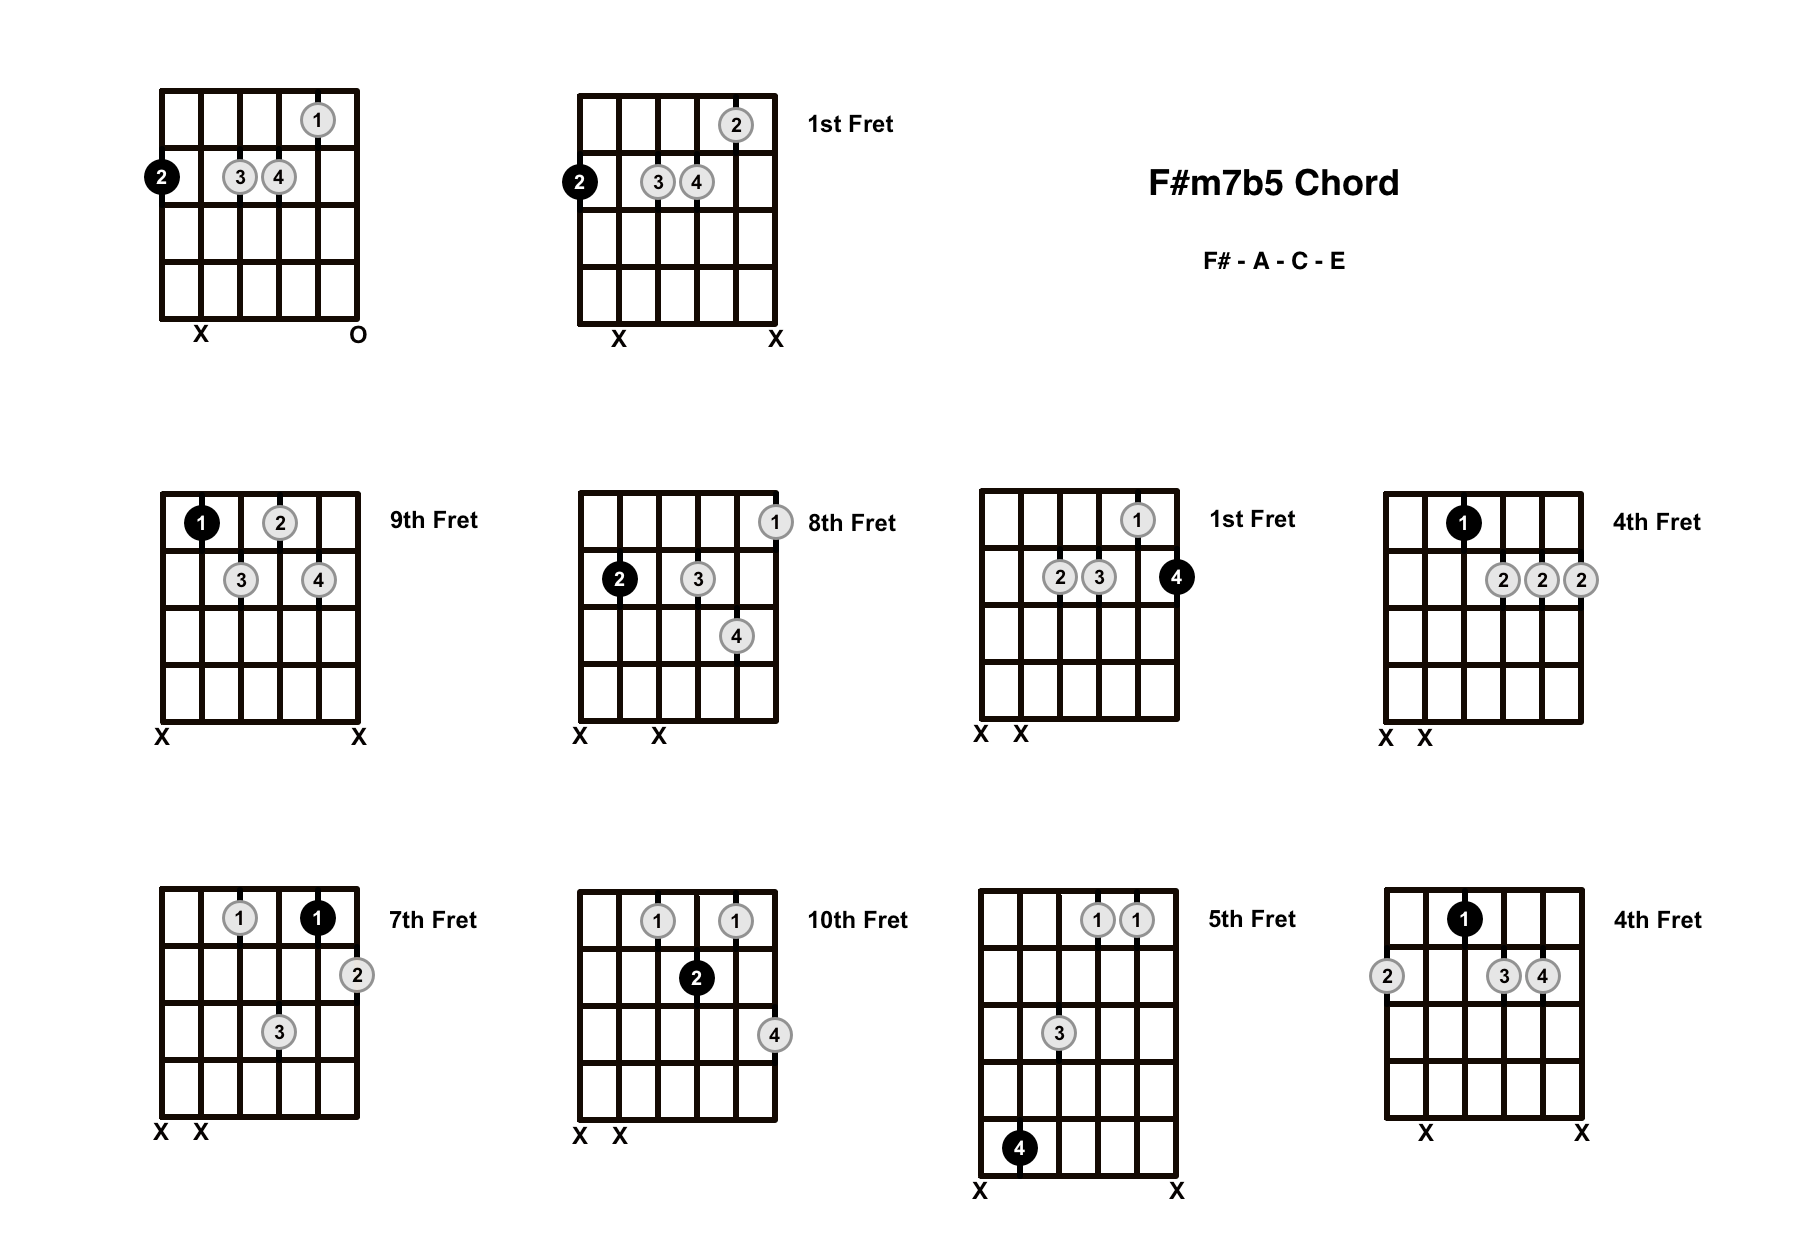 F#m7b5 Chord On The Guitar (F Sharp Minor 7 Flat 5, F Sharp Half Diminished) – Diagrams, Finger Positions and Theory